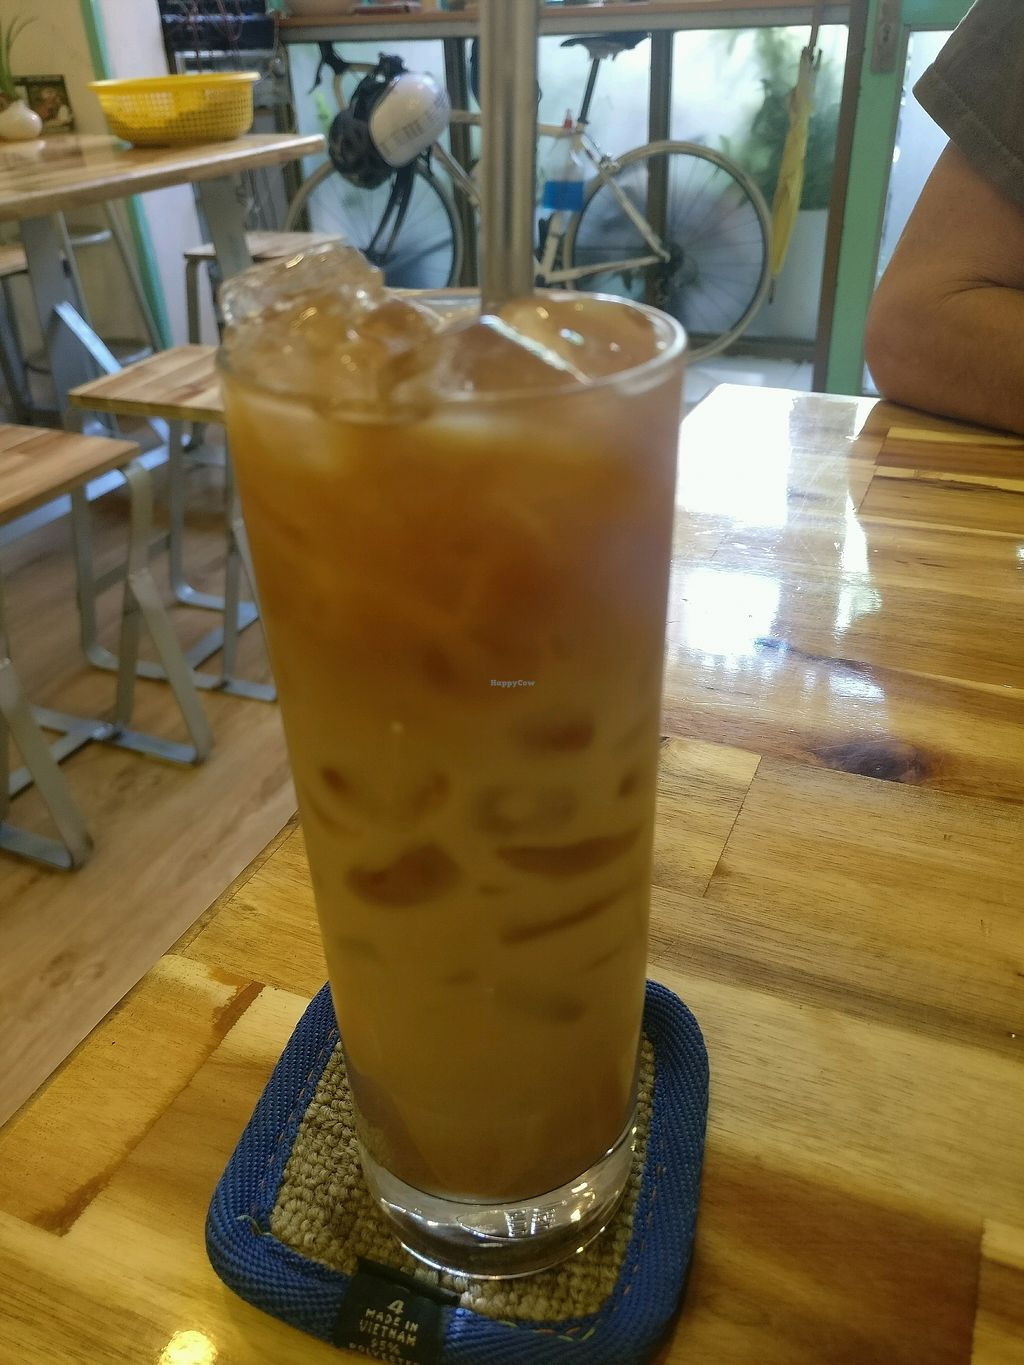 "Photo of Phuc Quang Chay  by <a href=""/members/profile/cdnvegan"">cdnvegan</a> <br/>Iced Vietnamese coffee <br/> February 23, 2018  - <a href='/contact/abuse/image/83479/362794'>Report</a>"